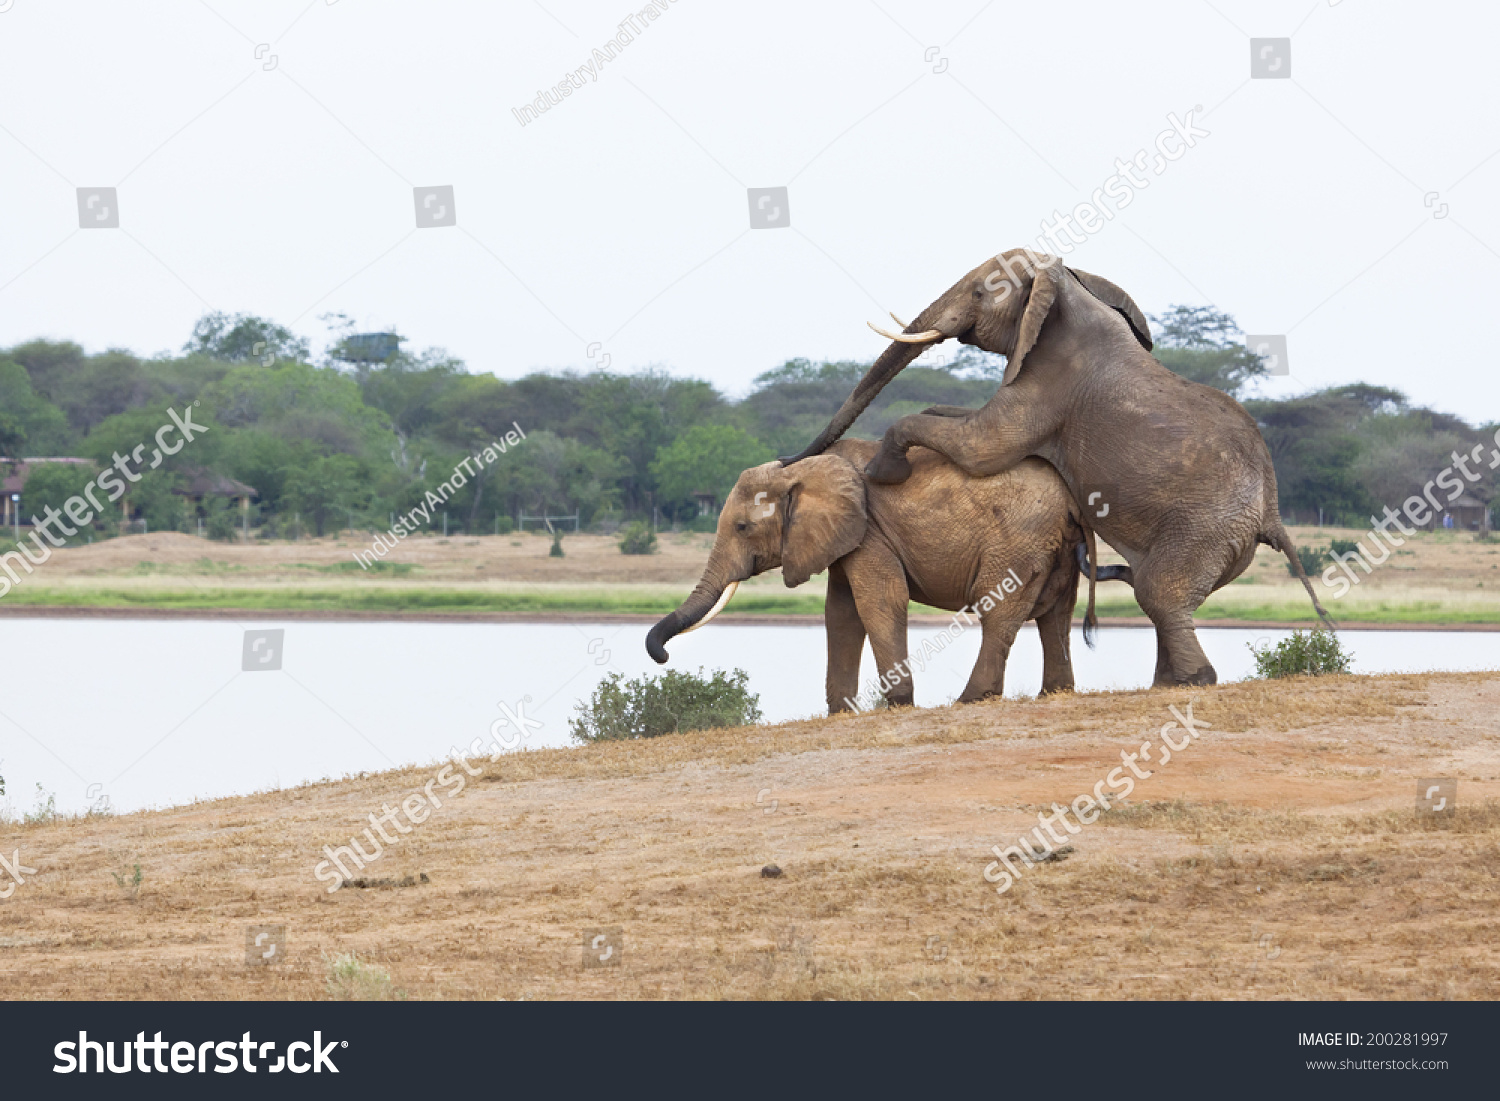 How do elephants have sex pic 72